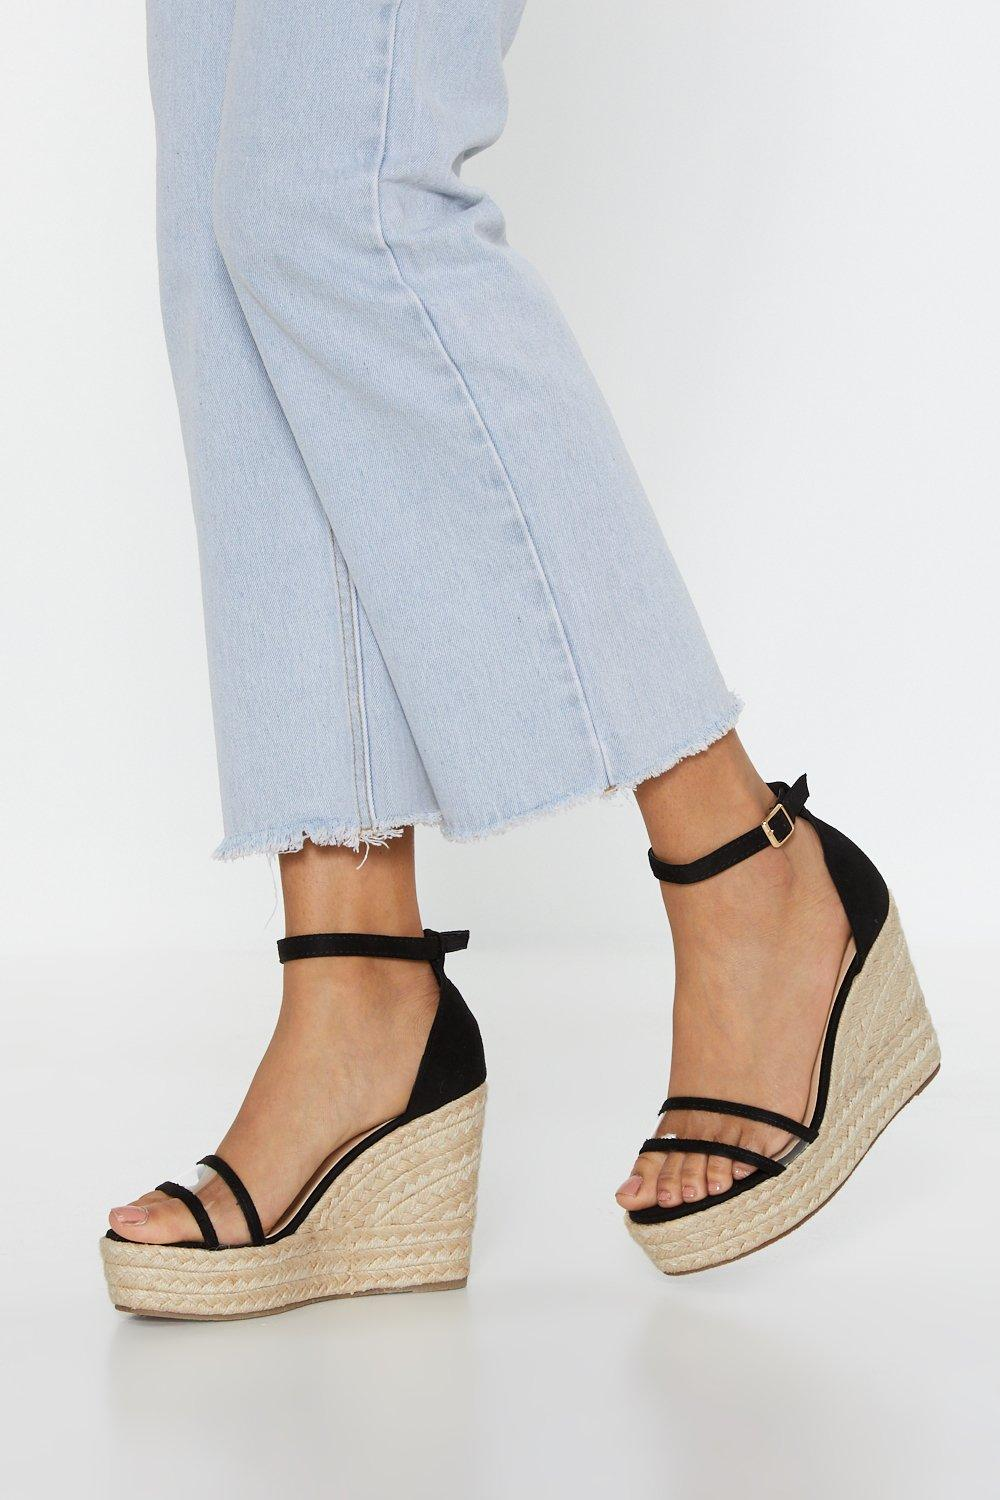 Give It Up Perspex Espadrille Wedges